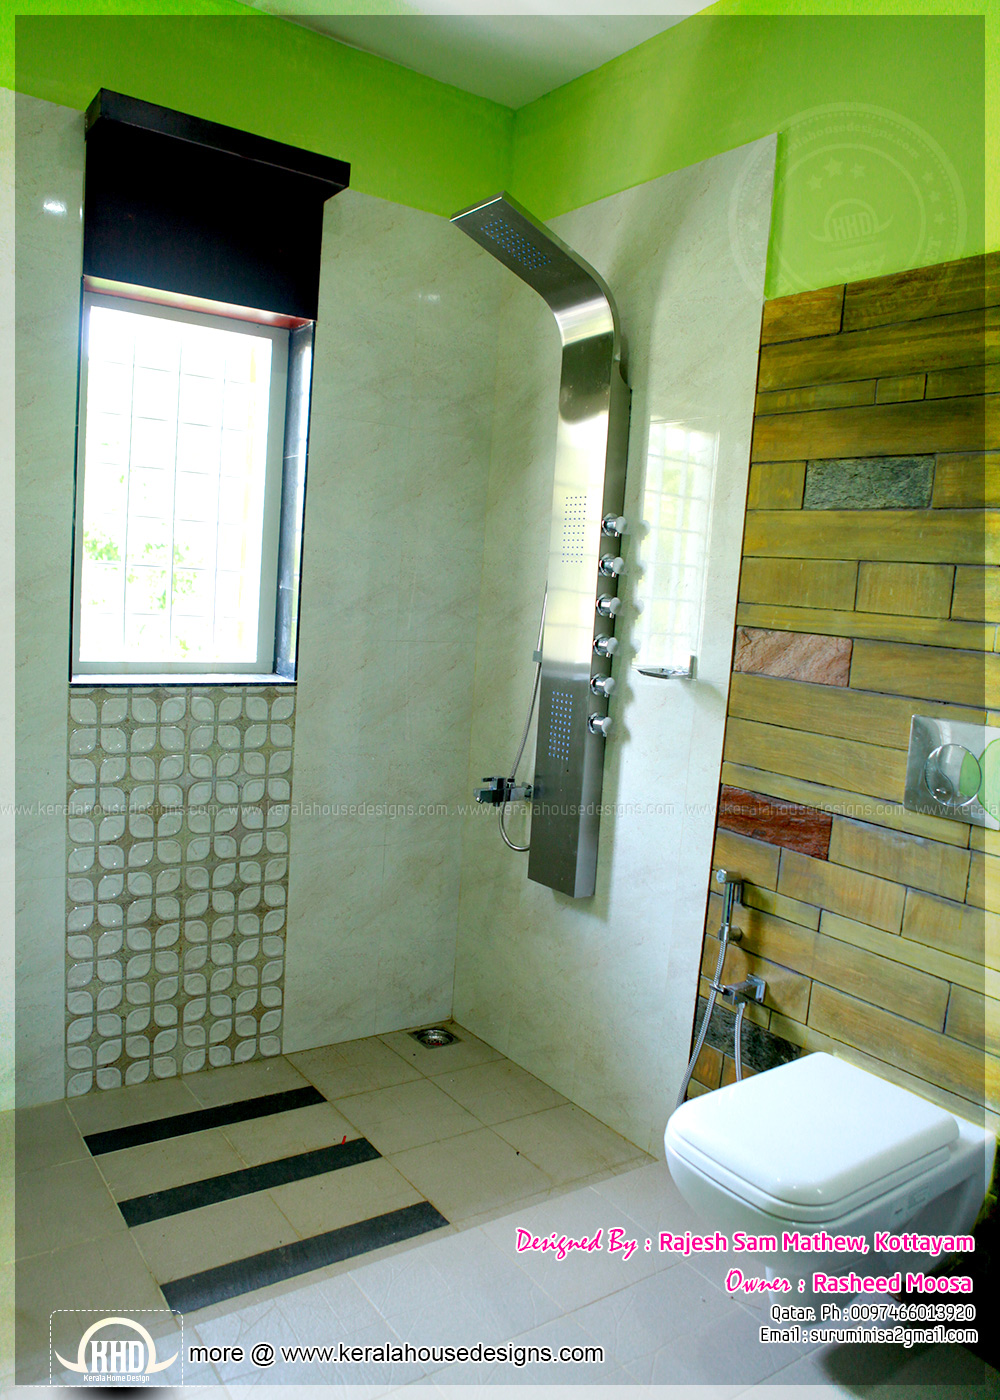 Kerala interior design with photos newbrough for Bathroom designs in kerala